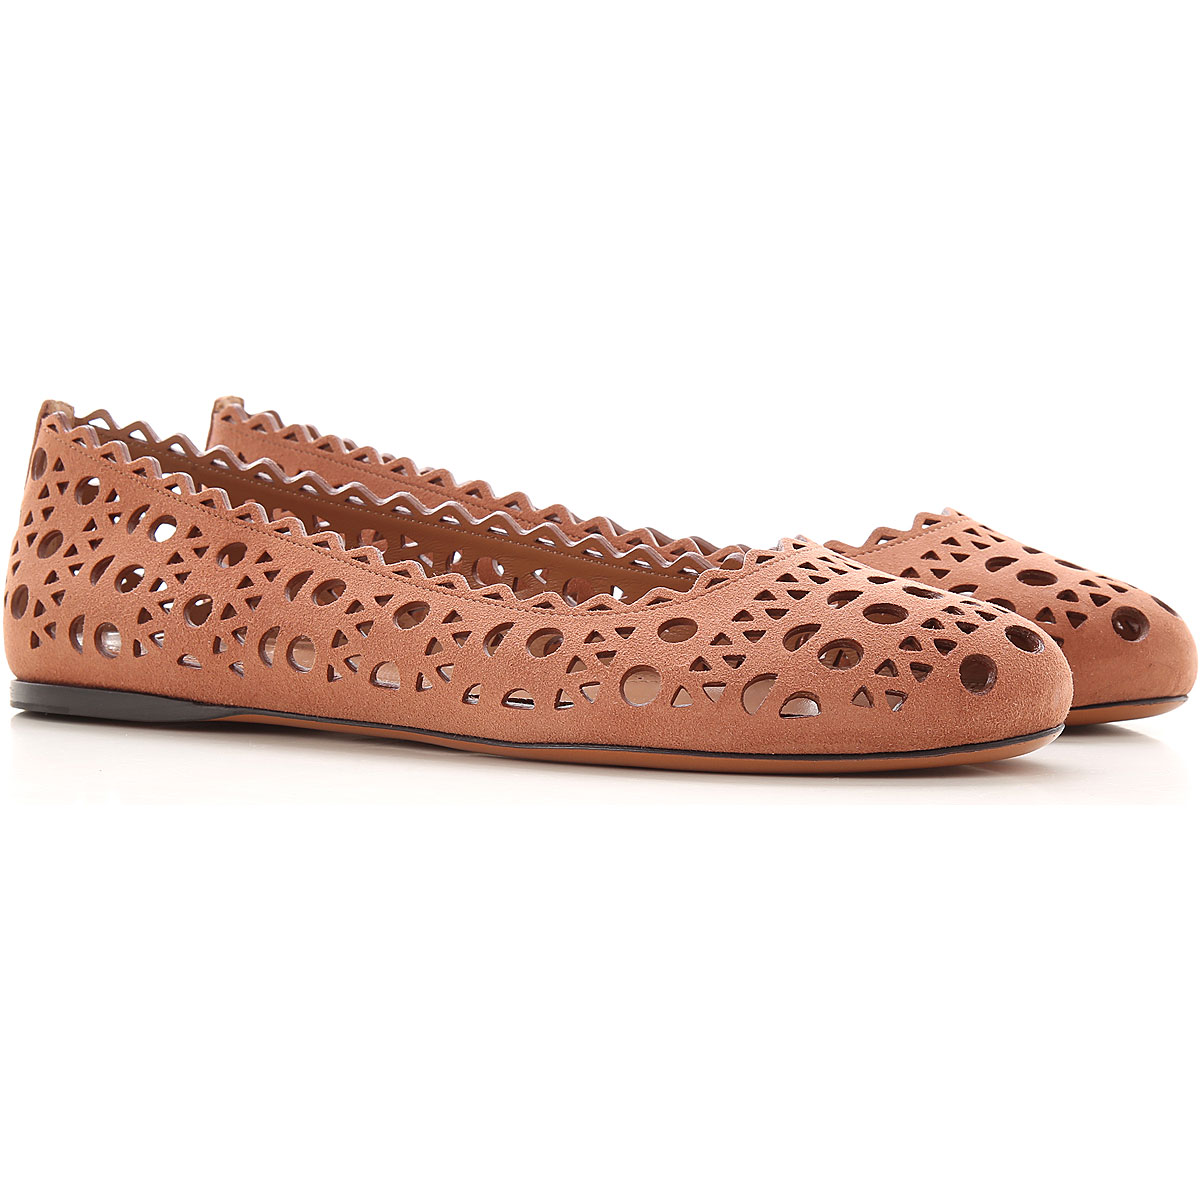 Alaia Ballet Flats Ballerina Shoes for Women On Sale, tabacco, Suede leather, 2019, 6 7 8 8.5